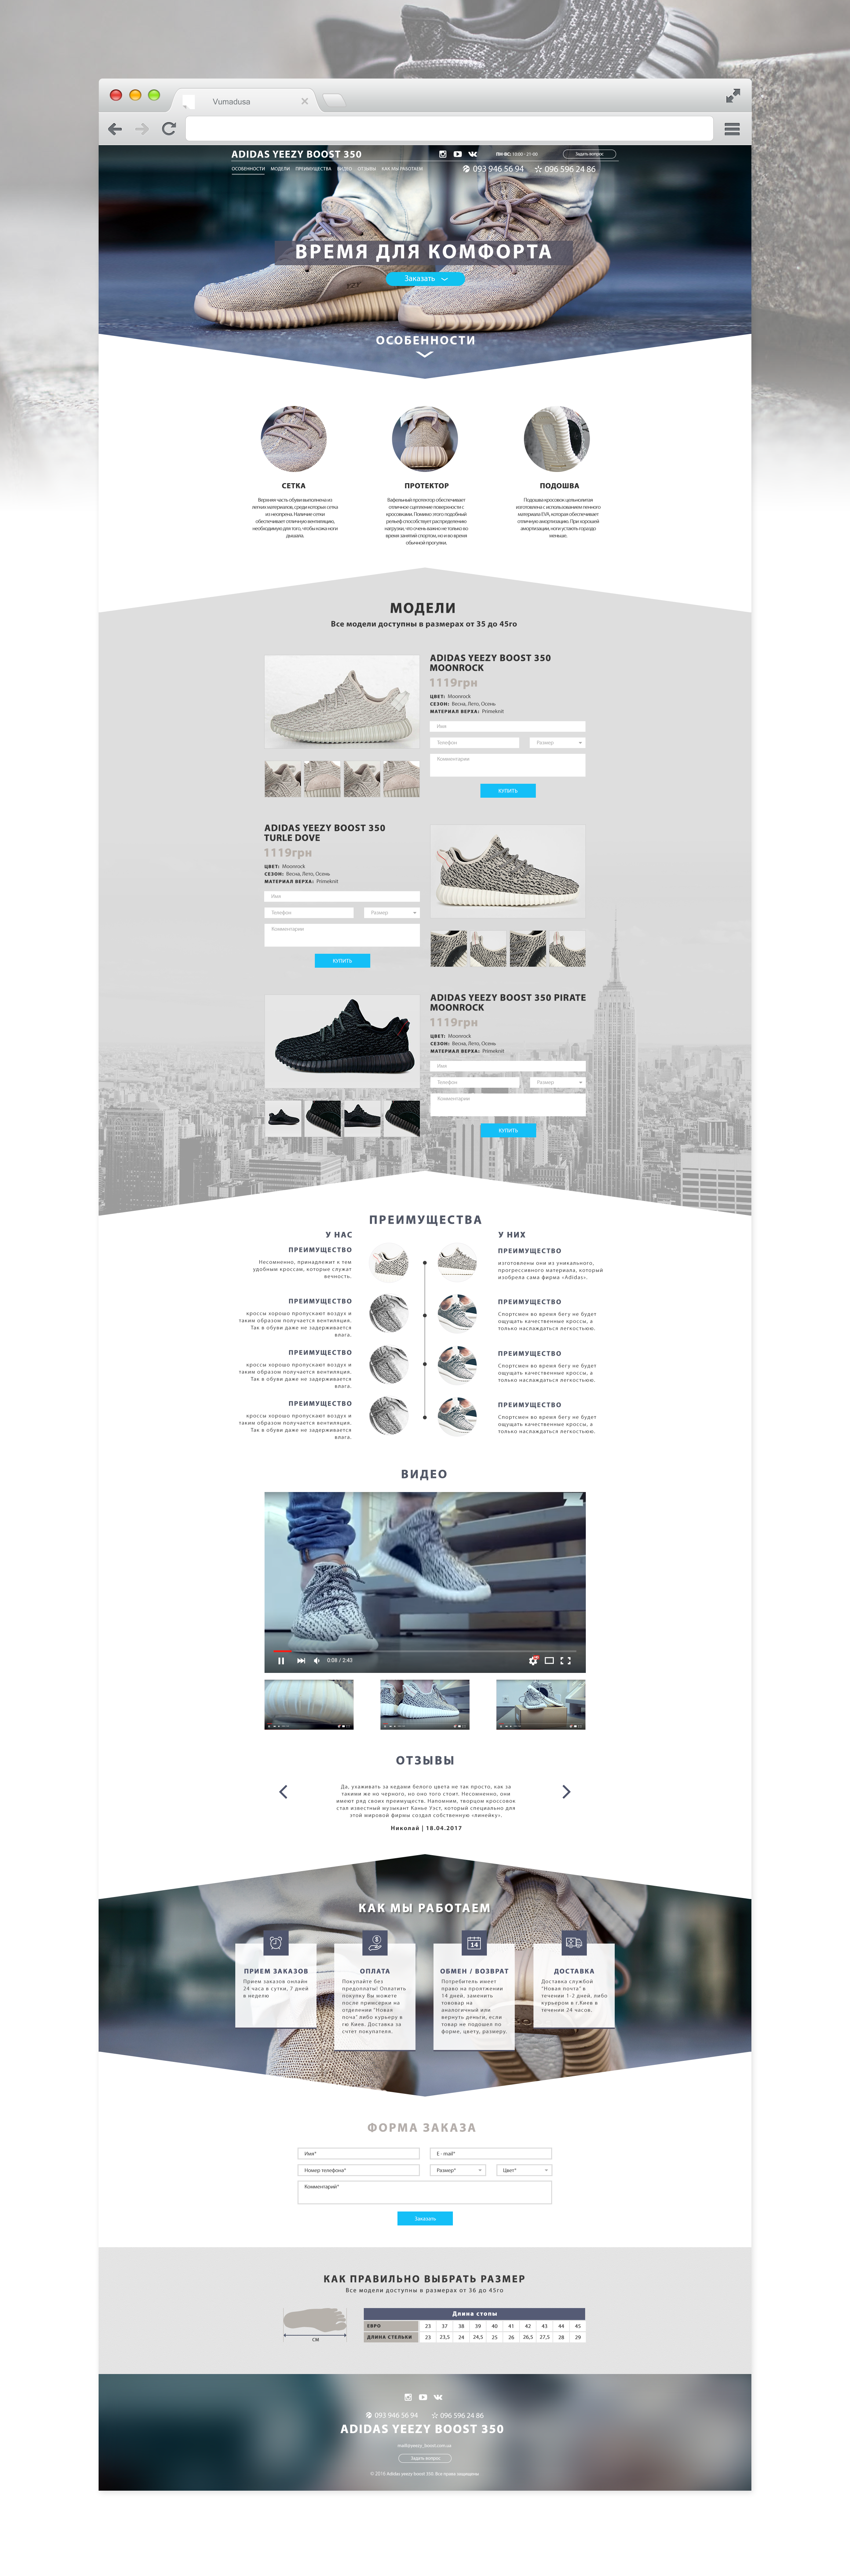 Design and development landing page